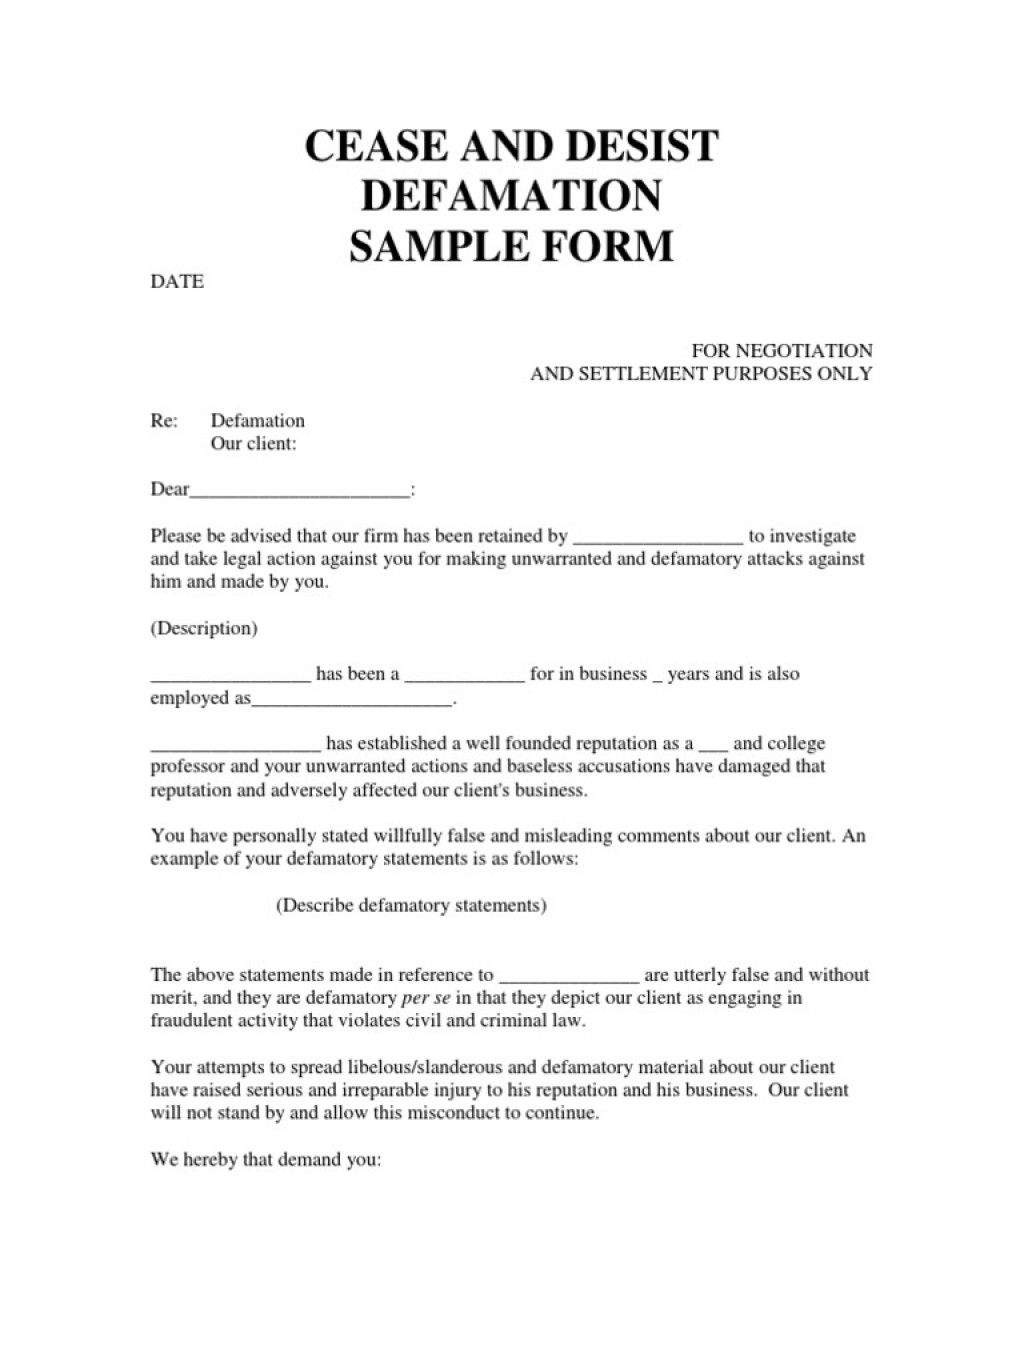 The extraordinary 008 Cease And Desist Letter Template